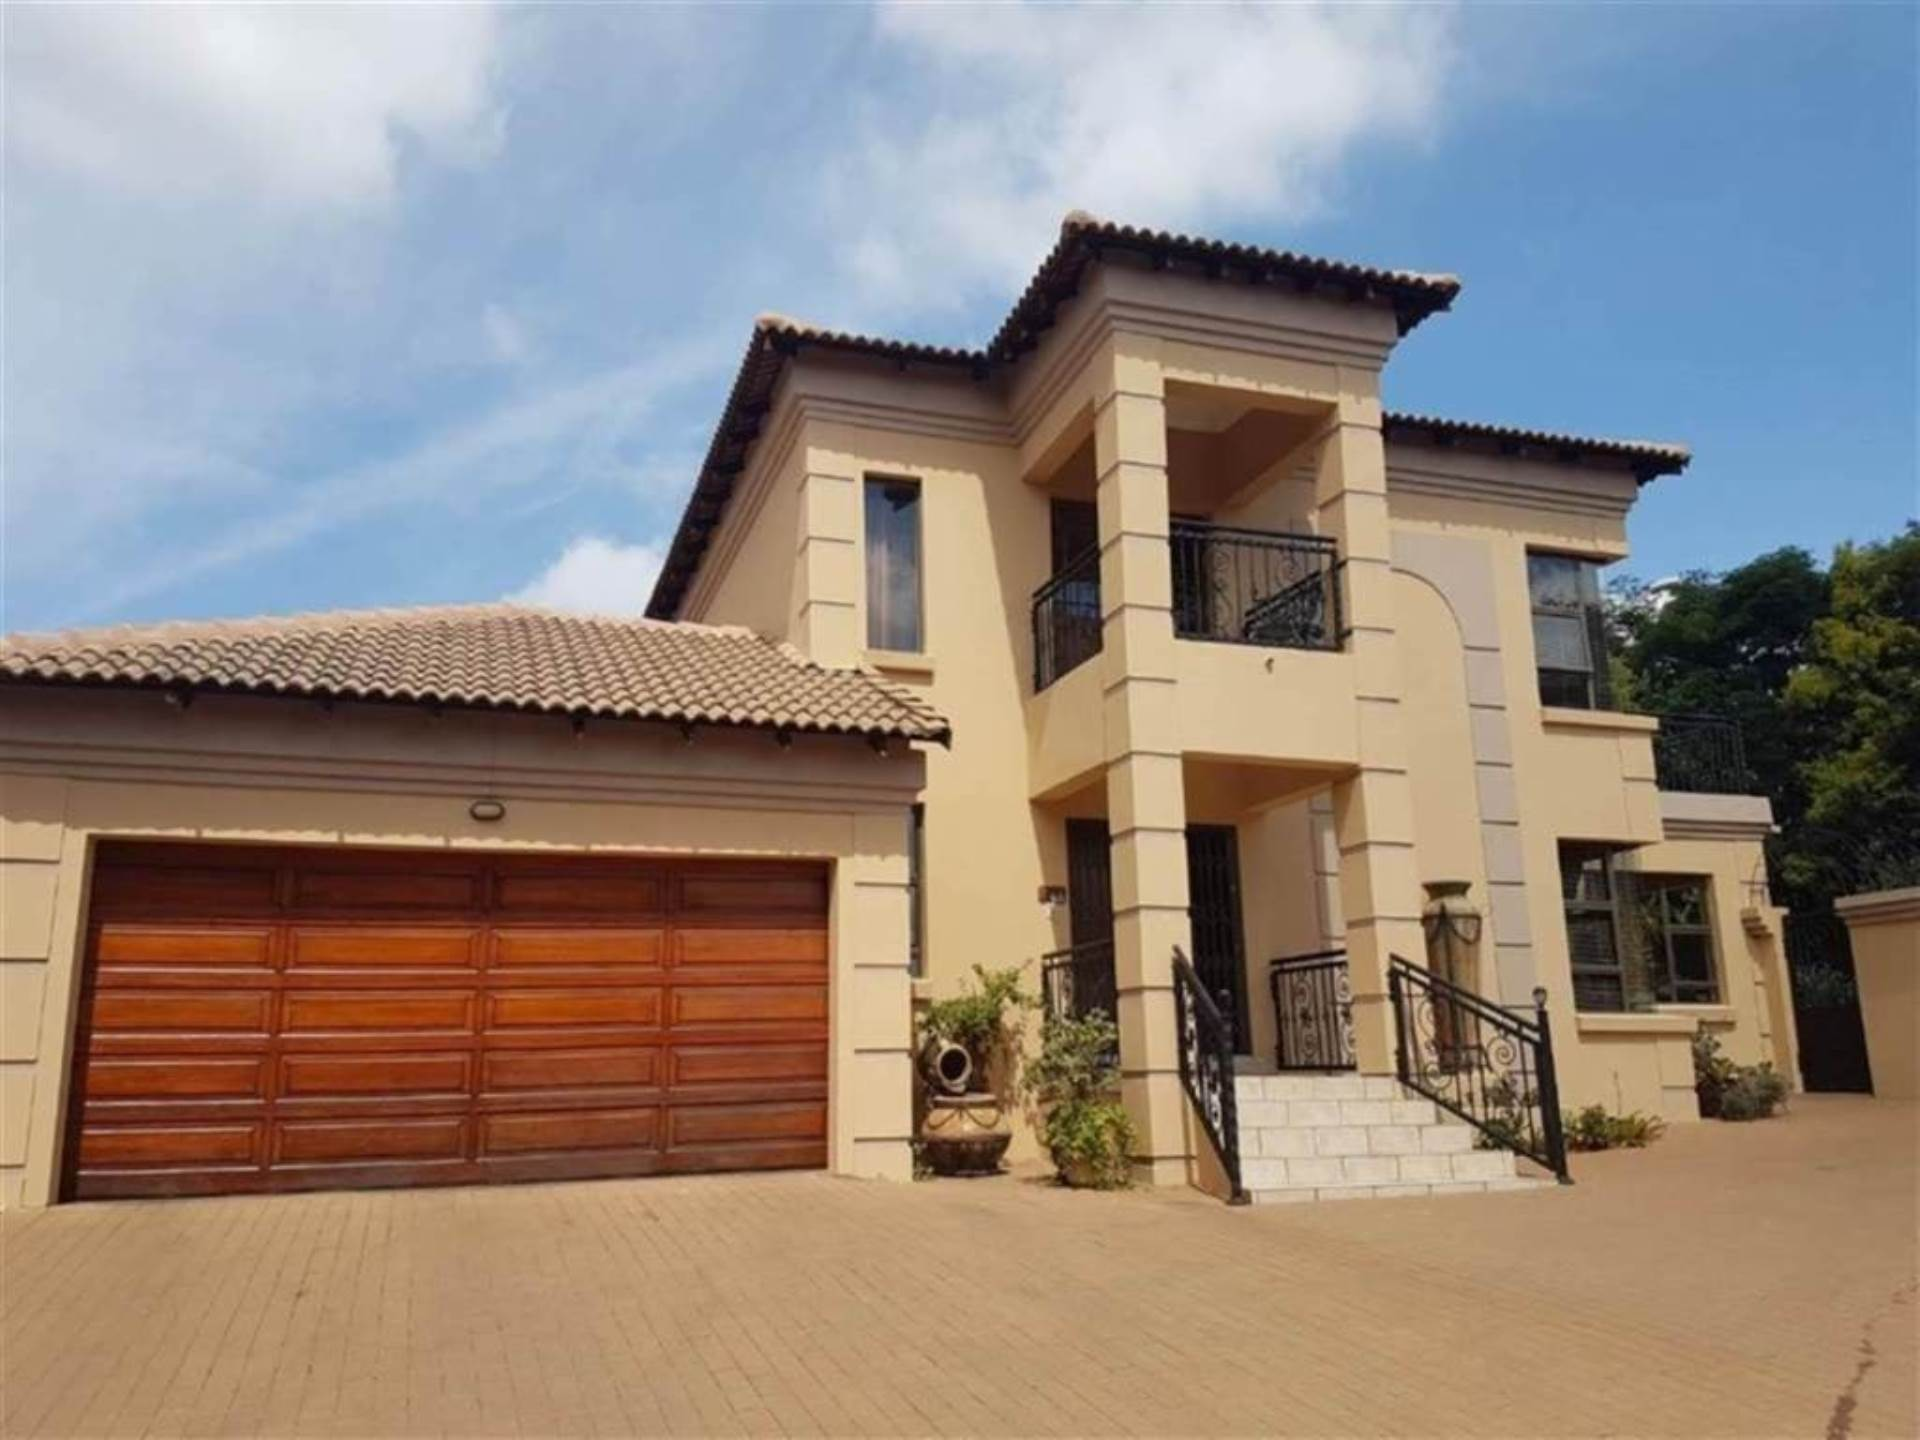 Property and Houses for sale in Centurion Central, House, 3 Bedrooms - ZAR 2,225,000